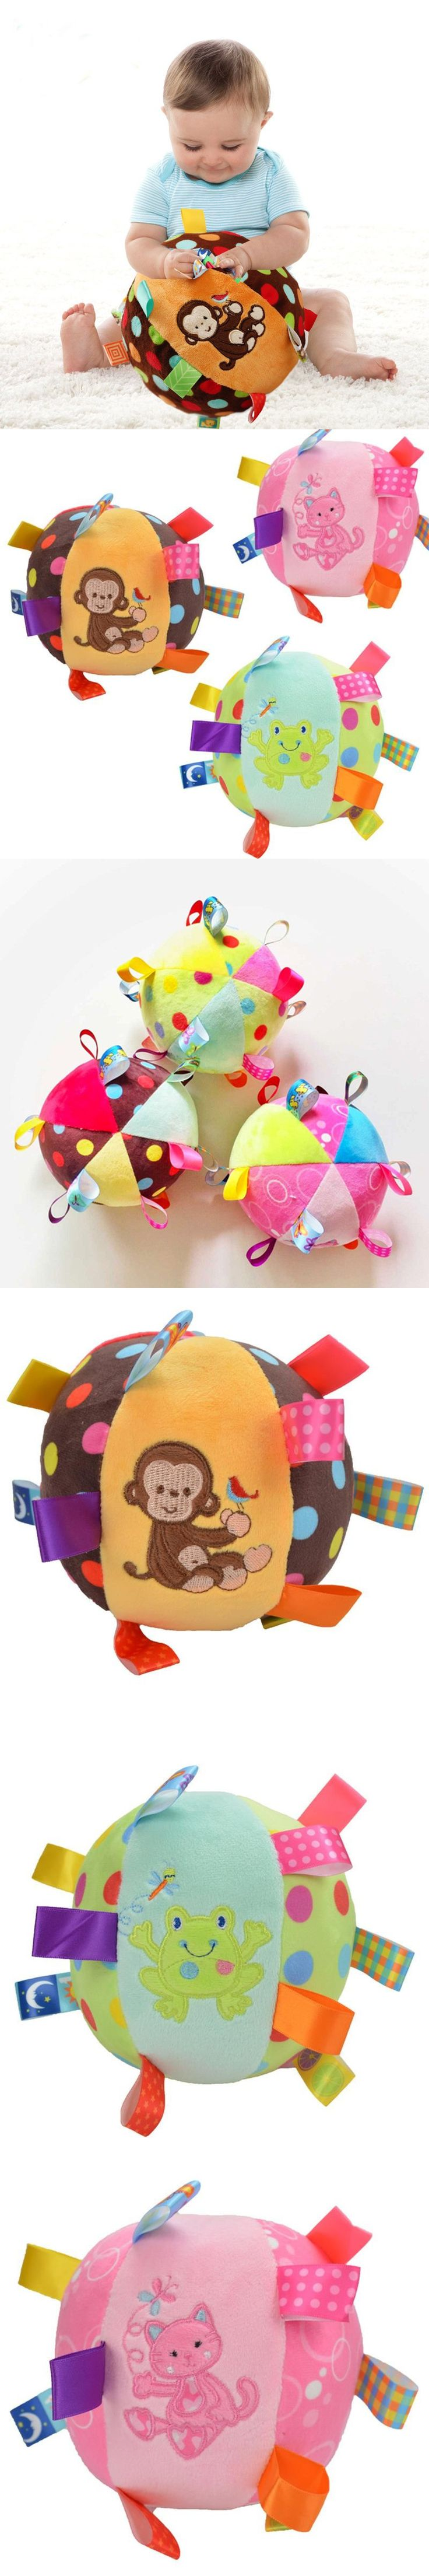 Multicolor Baby Toys Ring Bell Ball Stuffed Toys For Newborns Rattles Educational Cotton Dolls Toys For Babies -- BYC075 PT49 $14.93